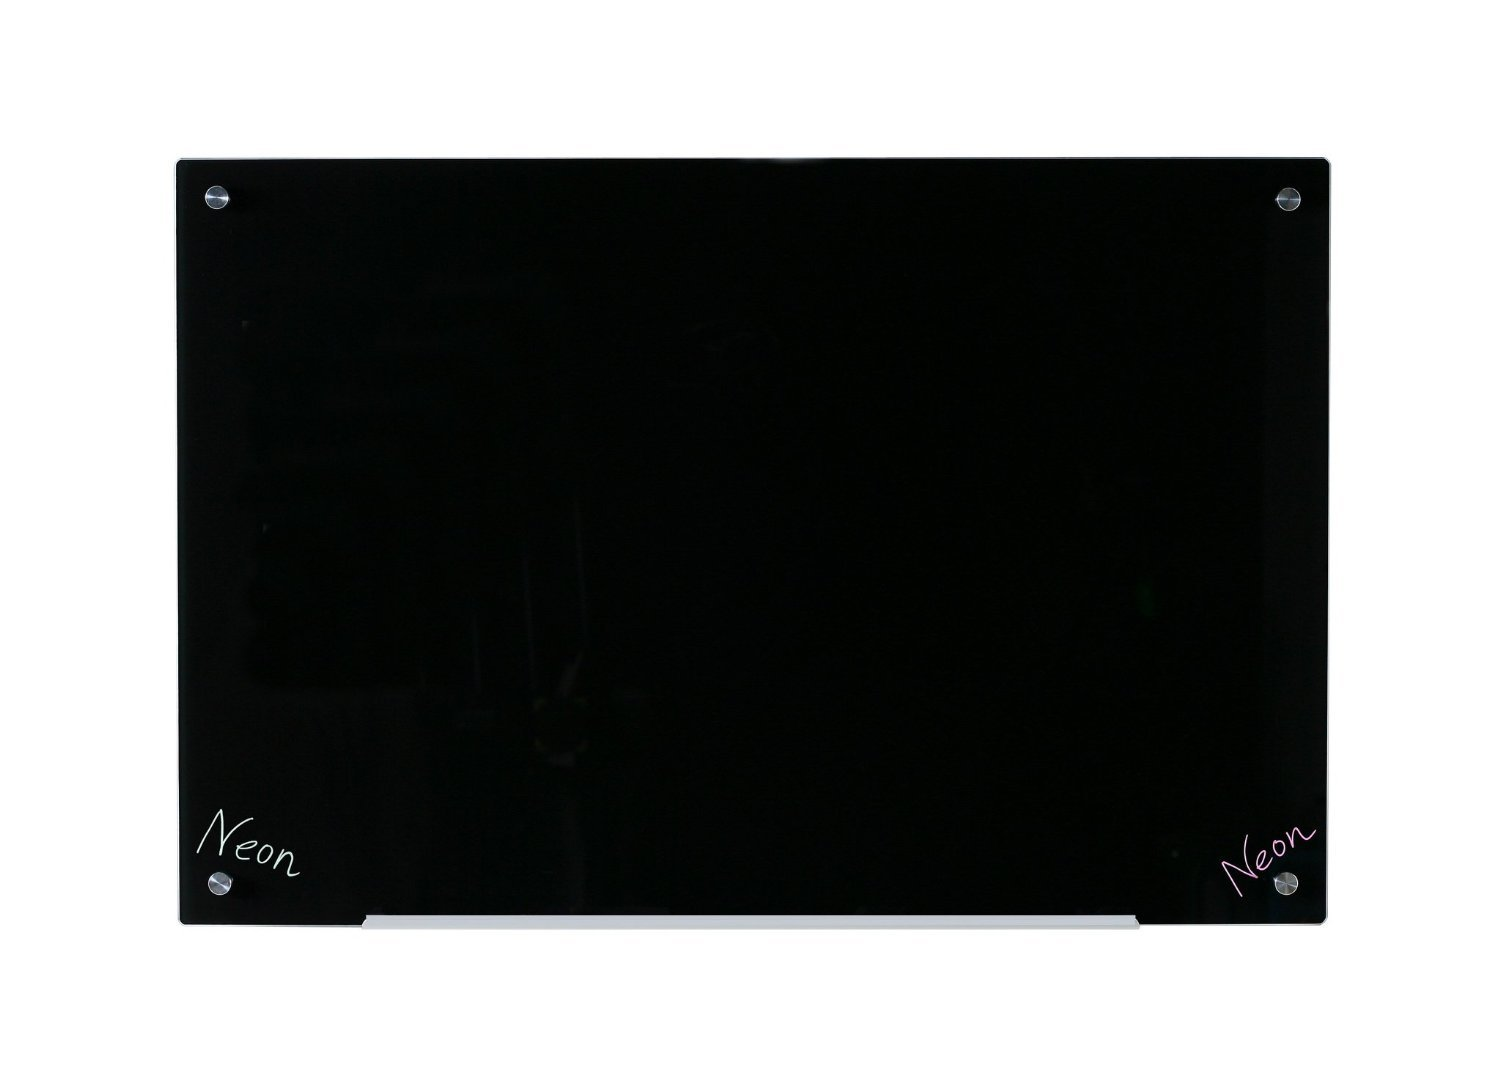 "35 ½"" x 47 ¼"" Black Tempered Glass Dry Erase Blackboard - 90x120 cm"